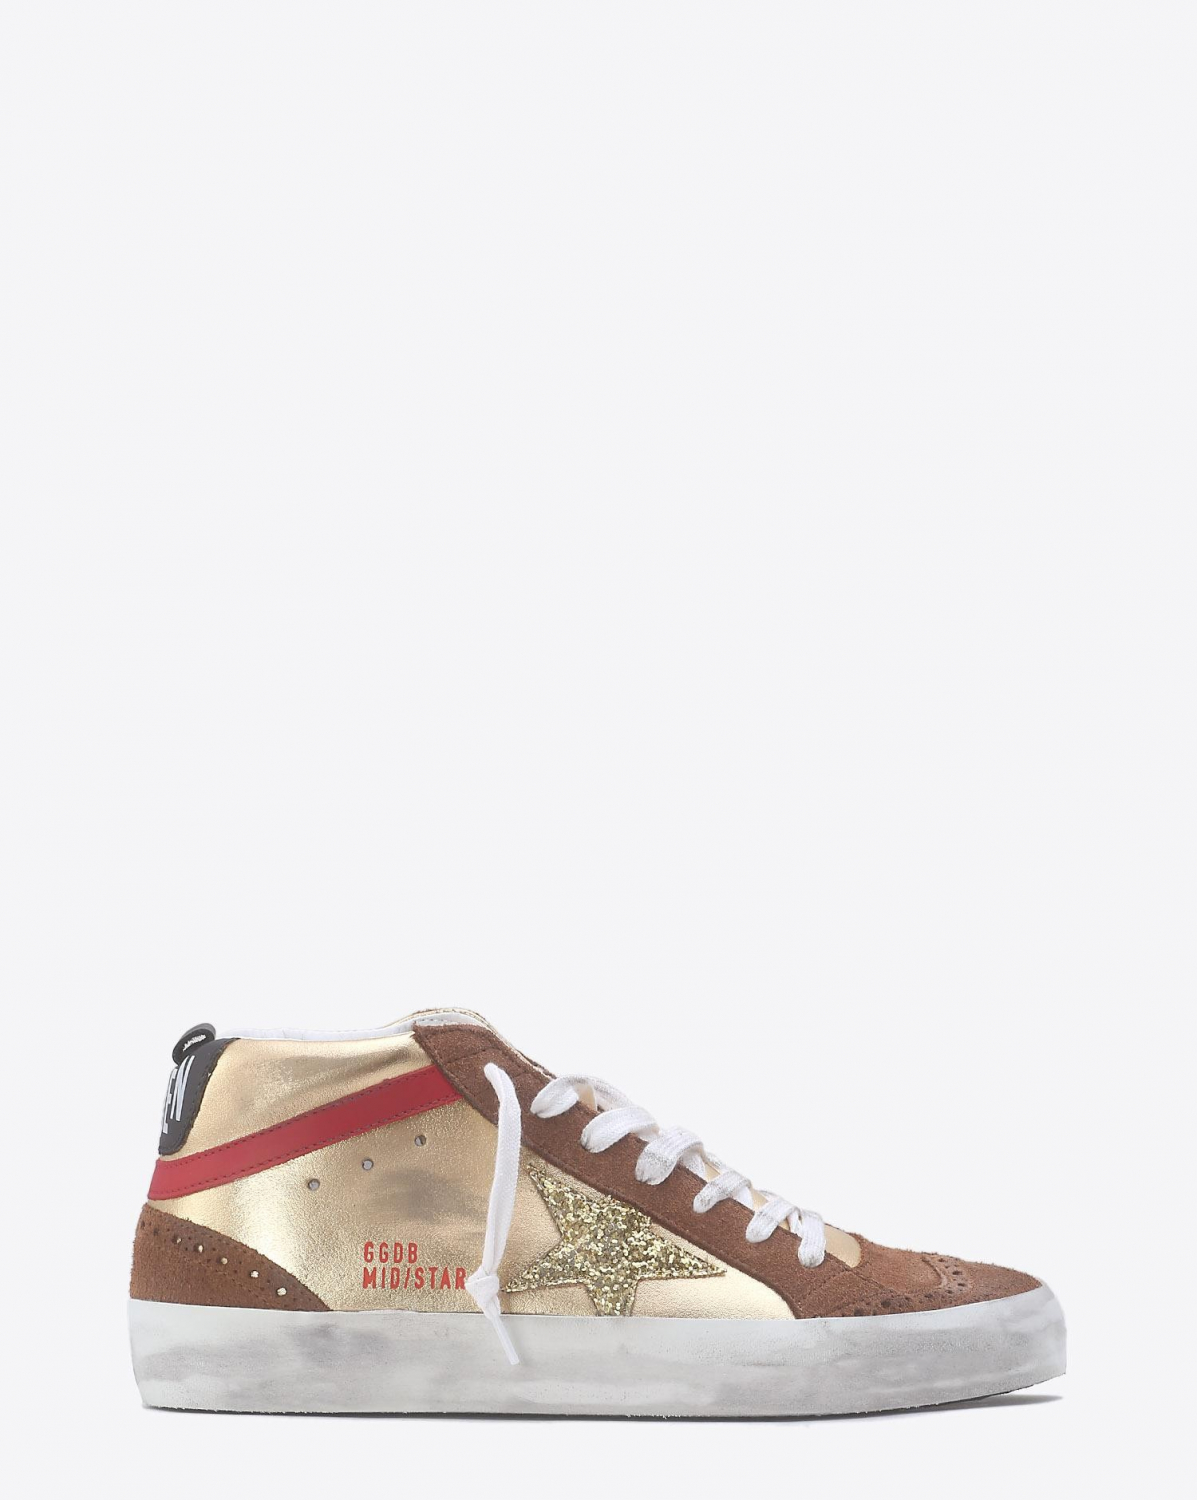 Golden Goose Woman Collection Sneakers Mid Star - Gold Laminated / Gold Glitter Star